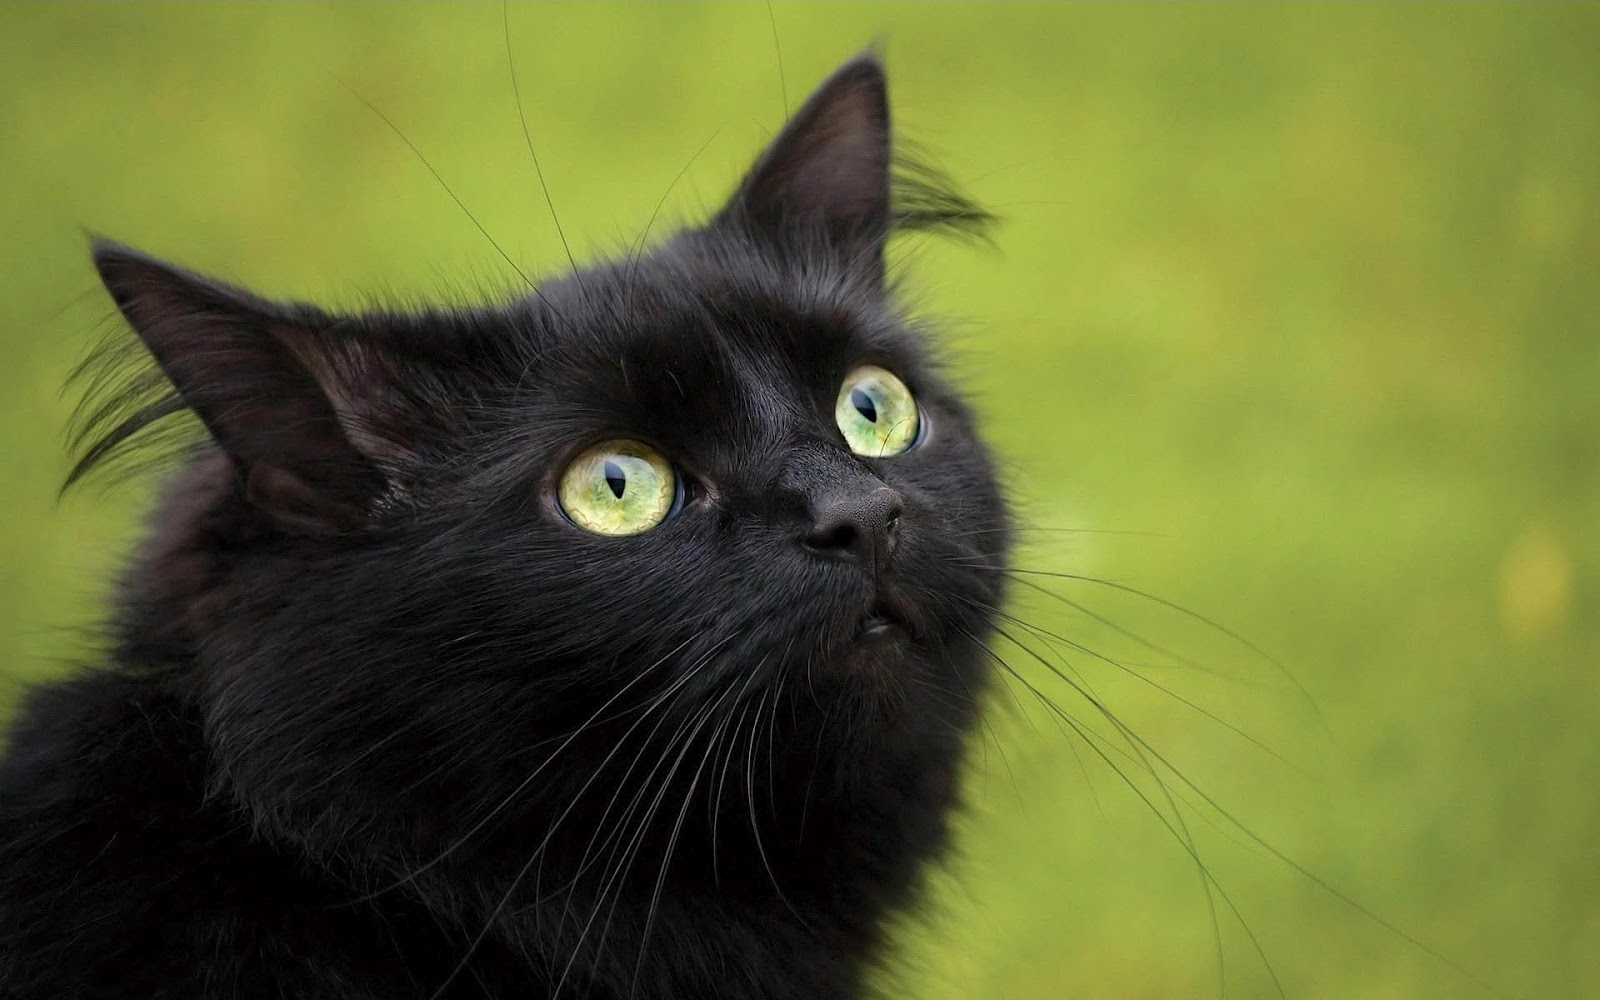 Black cat with green eyes wallpaper 1600x1000